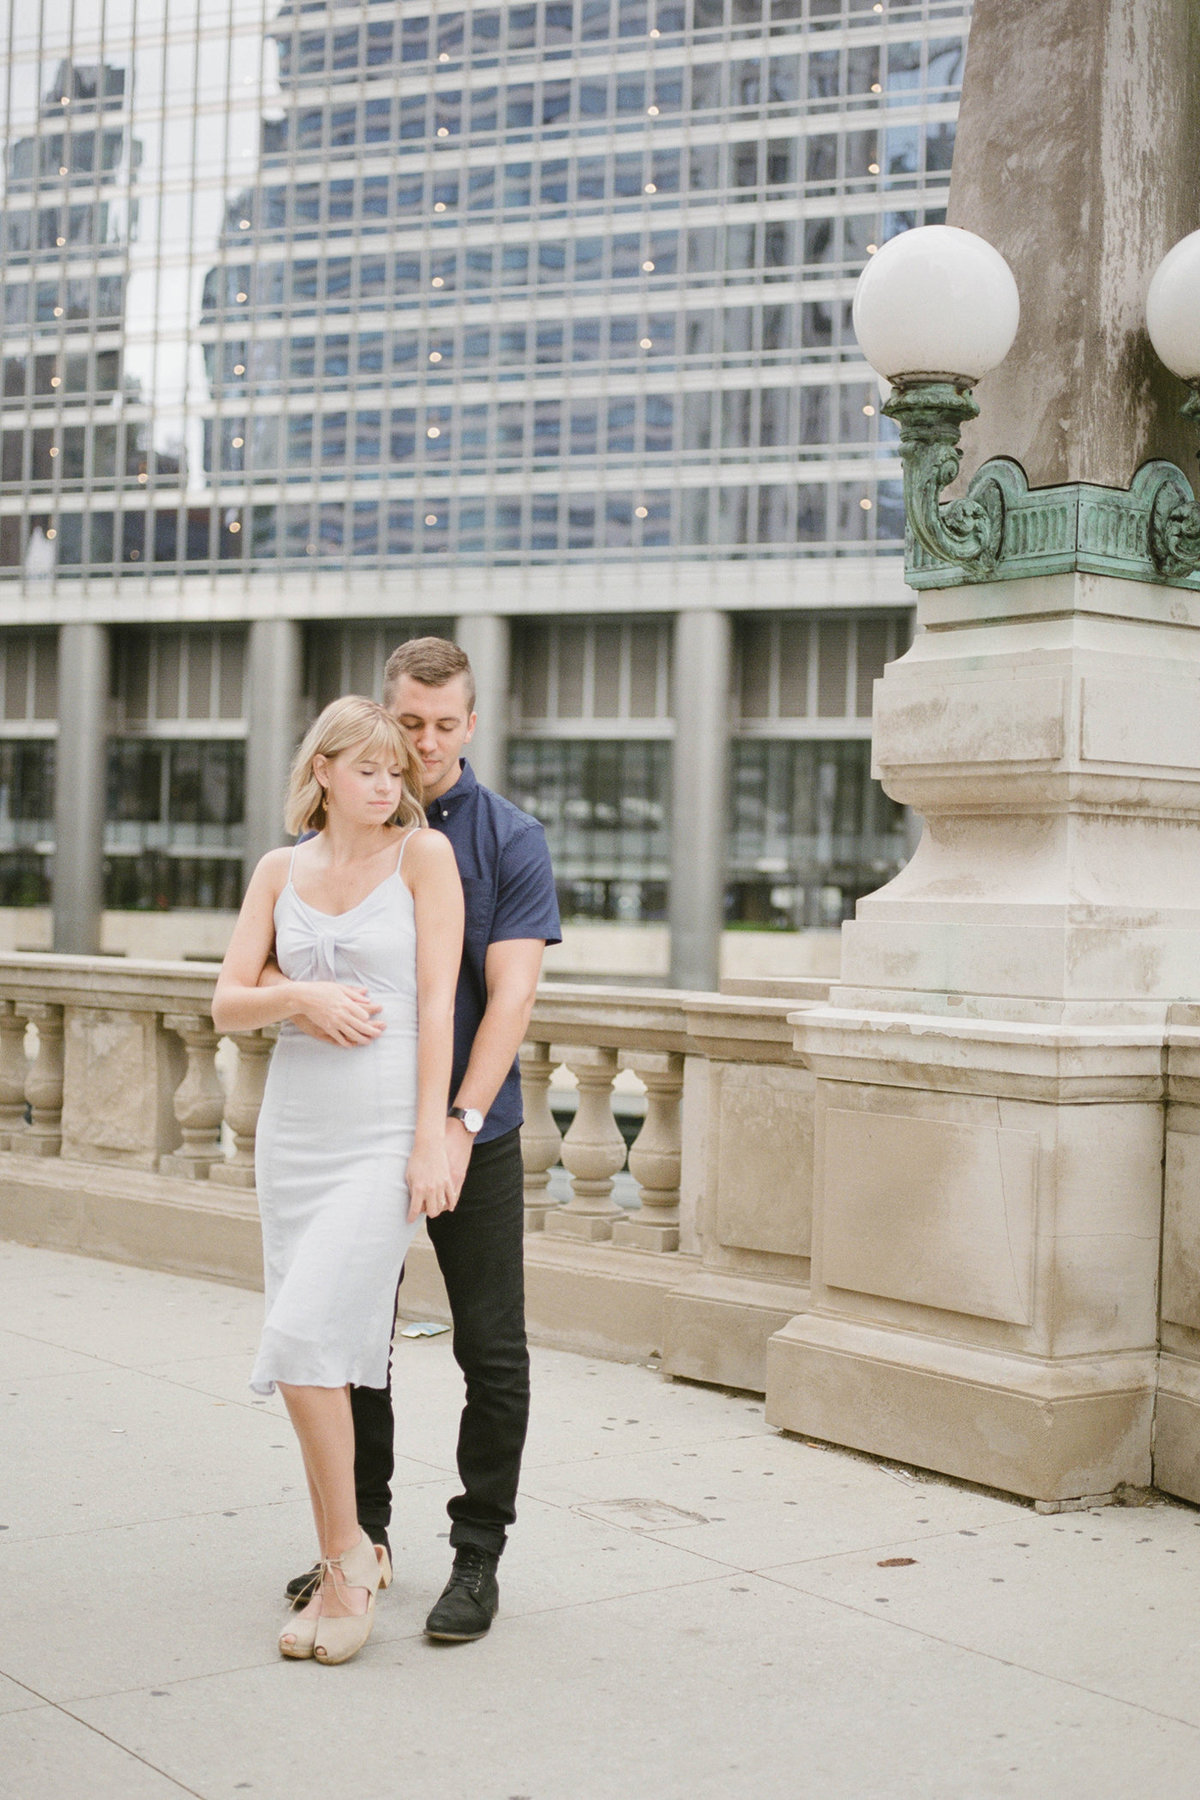 Chicago Wedding Photographer - Fine Art Film Photographer - Sarah Sunstrom - Sam + Morgan - Engagement Session - 31